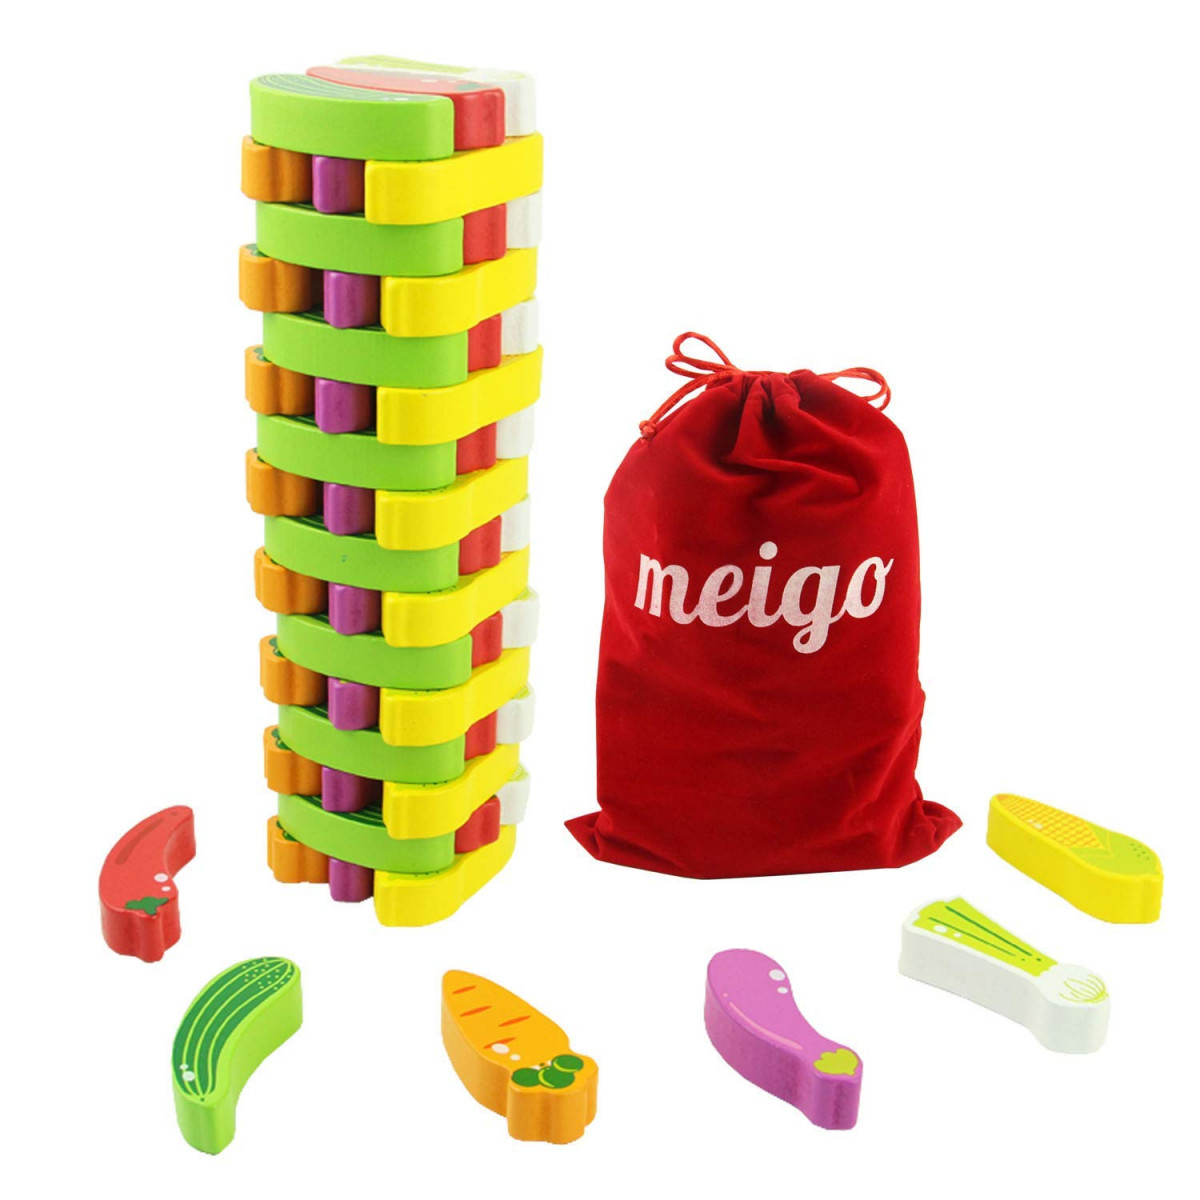 meigo wooden toys toddler wooden educational stacking board games building  blocks for kids 3 4 5 6 year old boys girls (55pcs)